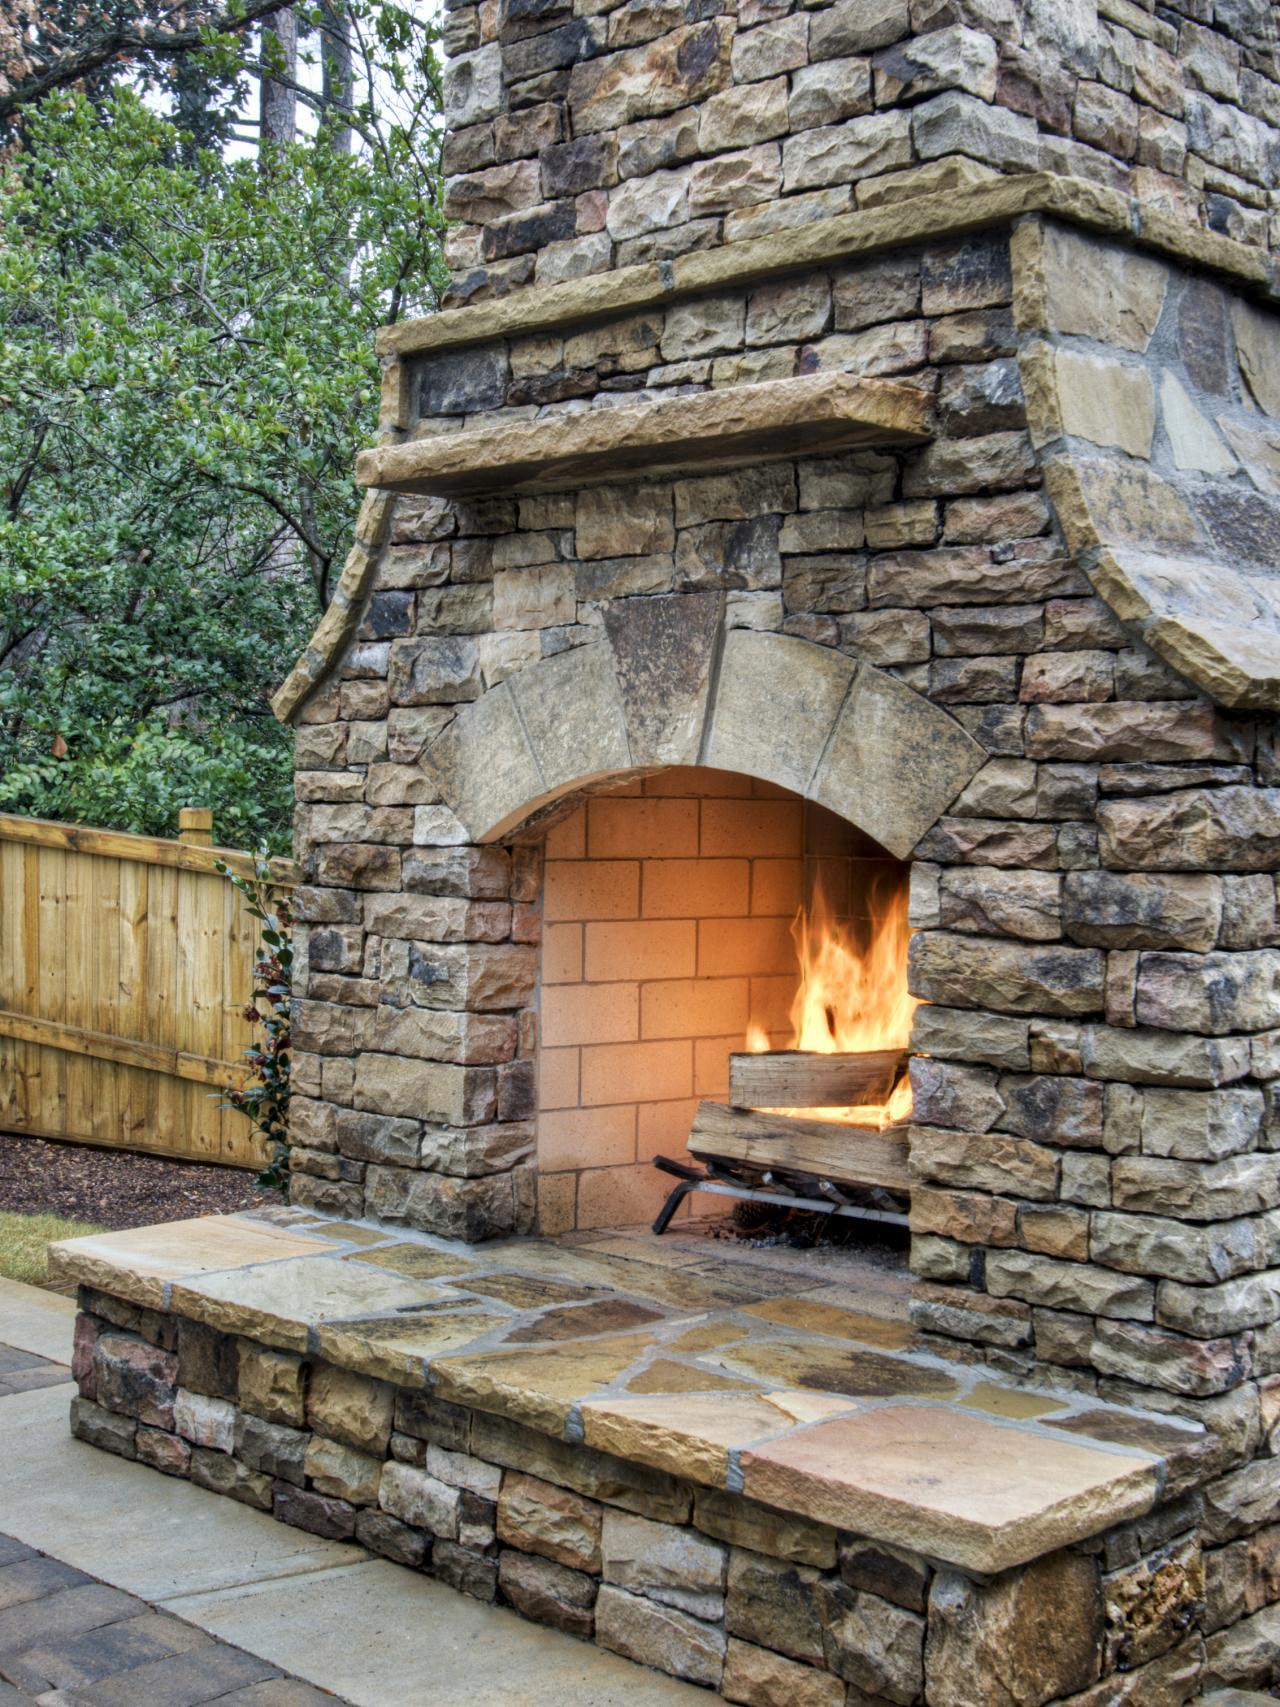 Diy Outdoor Fireplace is Perfect Idea | Fireplace Designs on Diy Outdoor Fire  id=93037